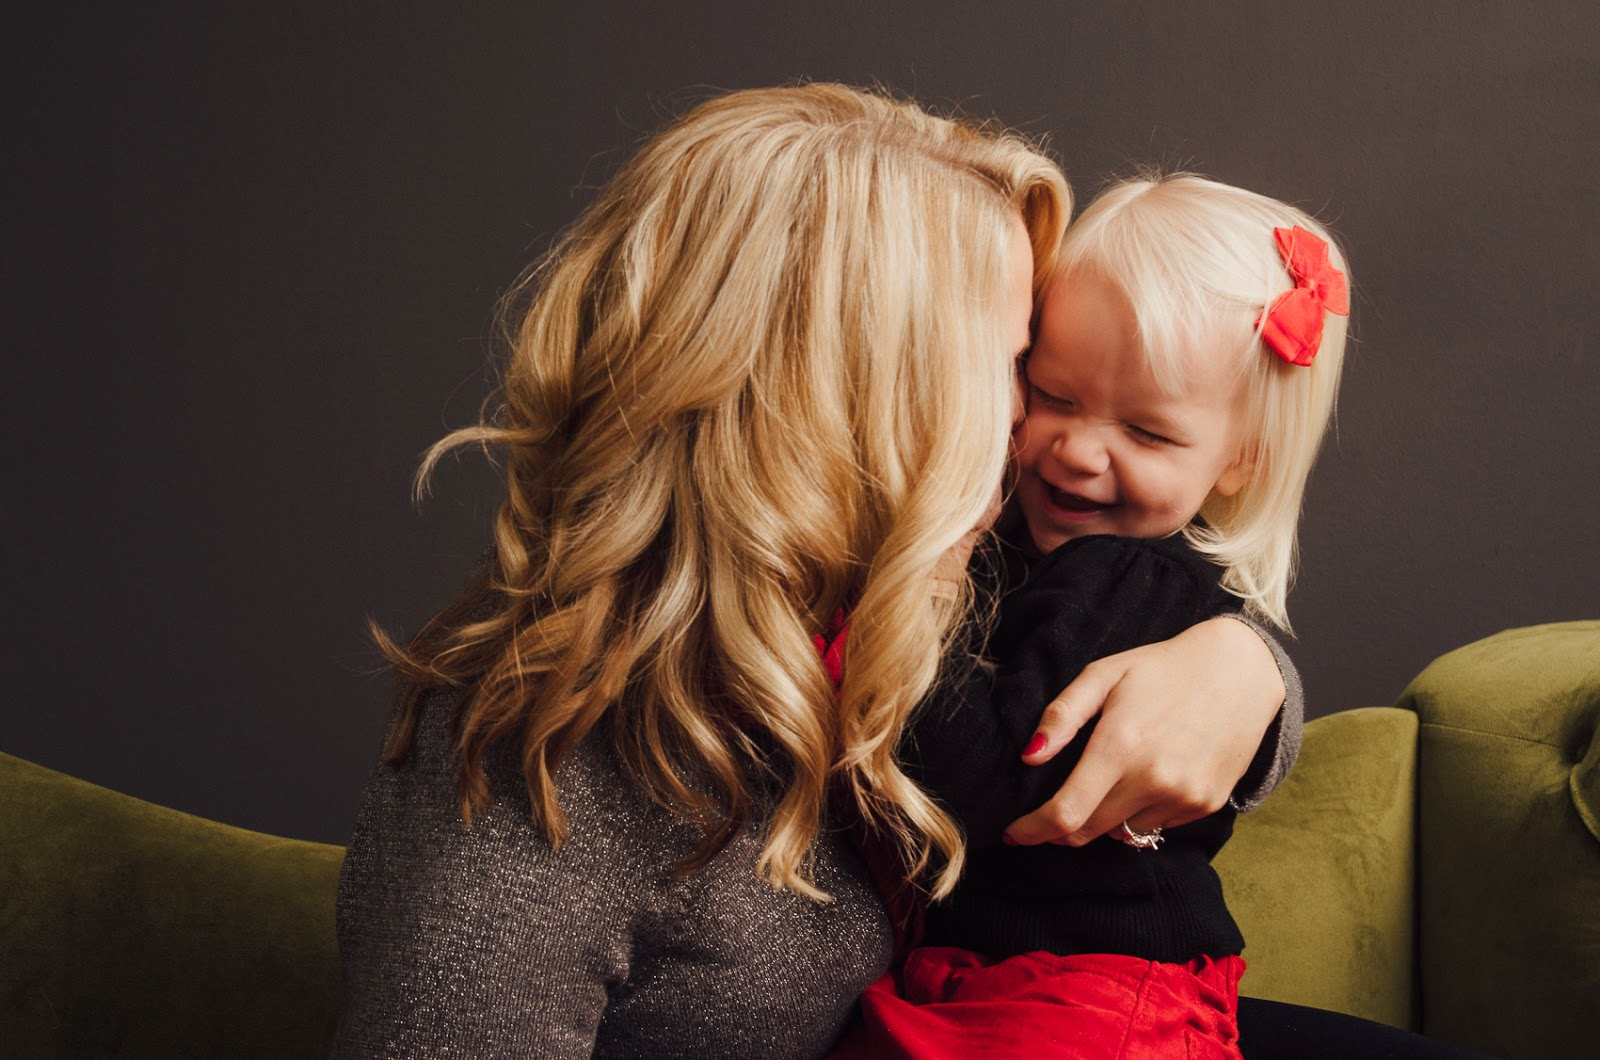 boutique photography studio in indianapolis captures a beautiful mom and little girl